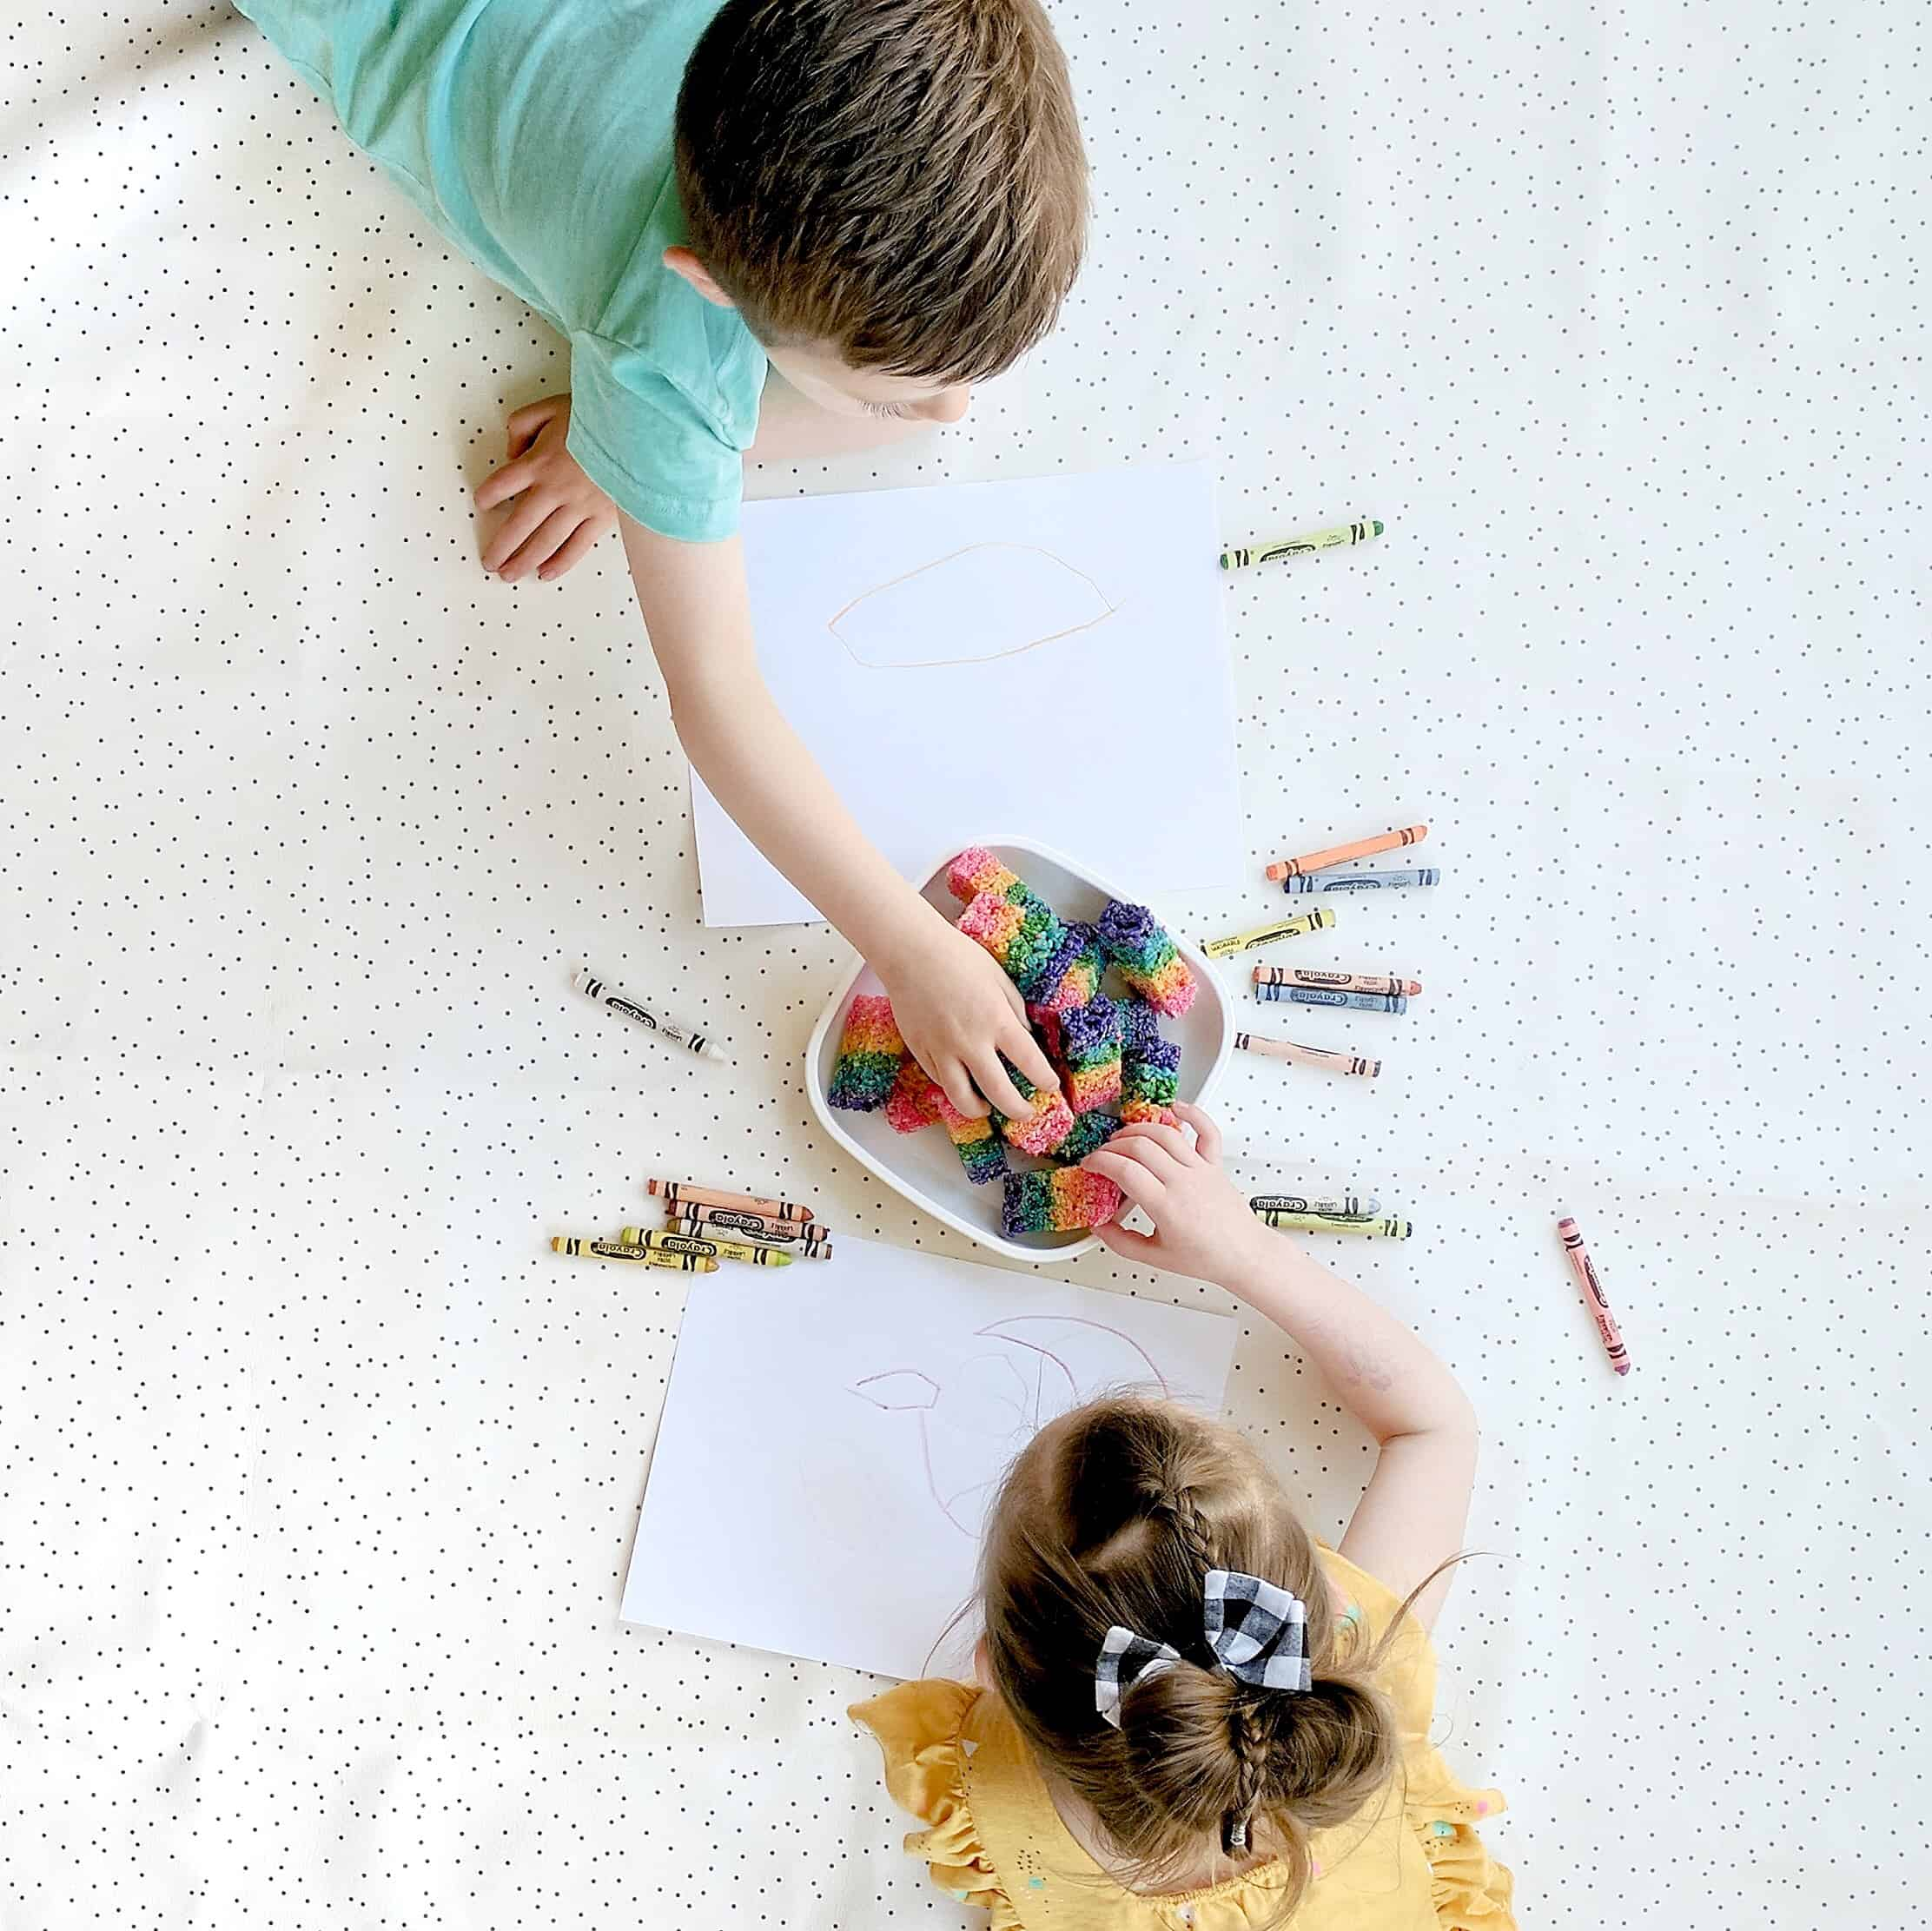 kids playing and coloring on white mat